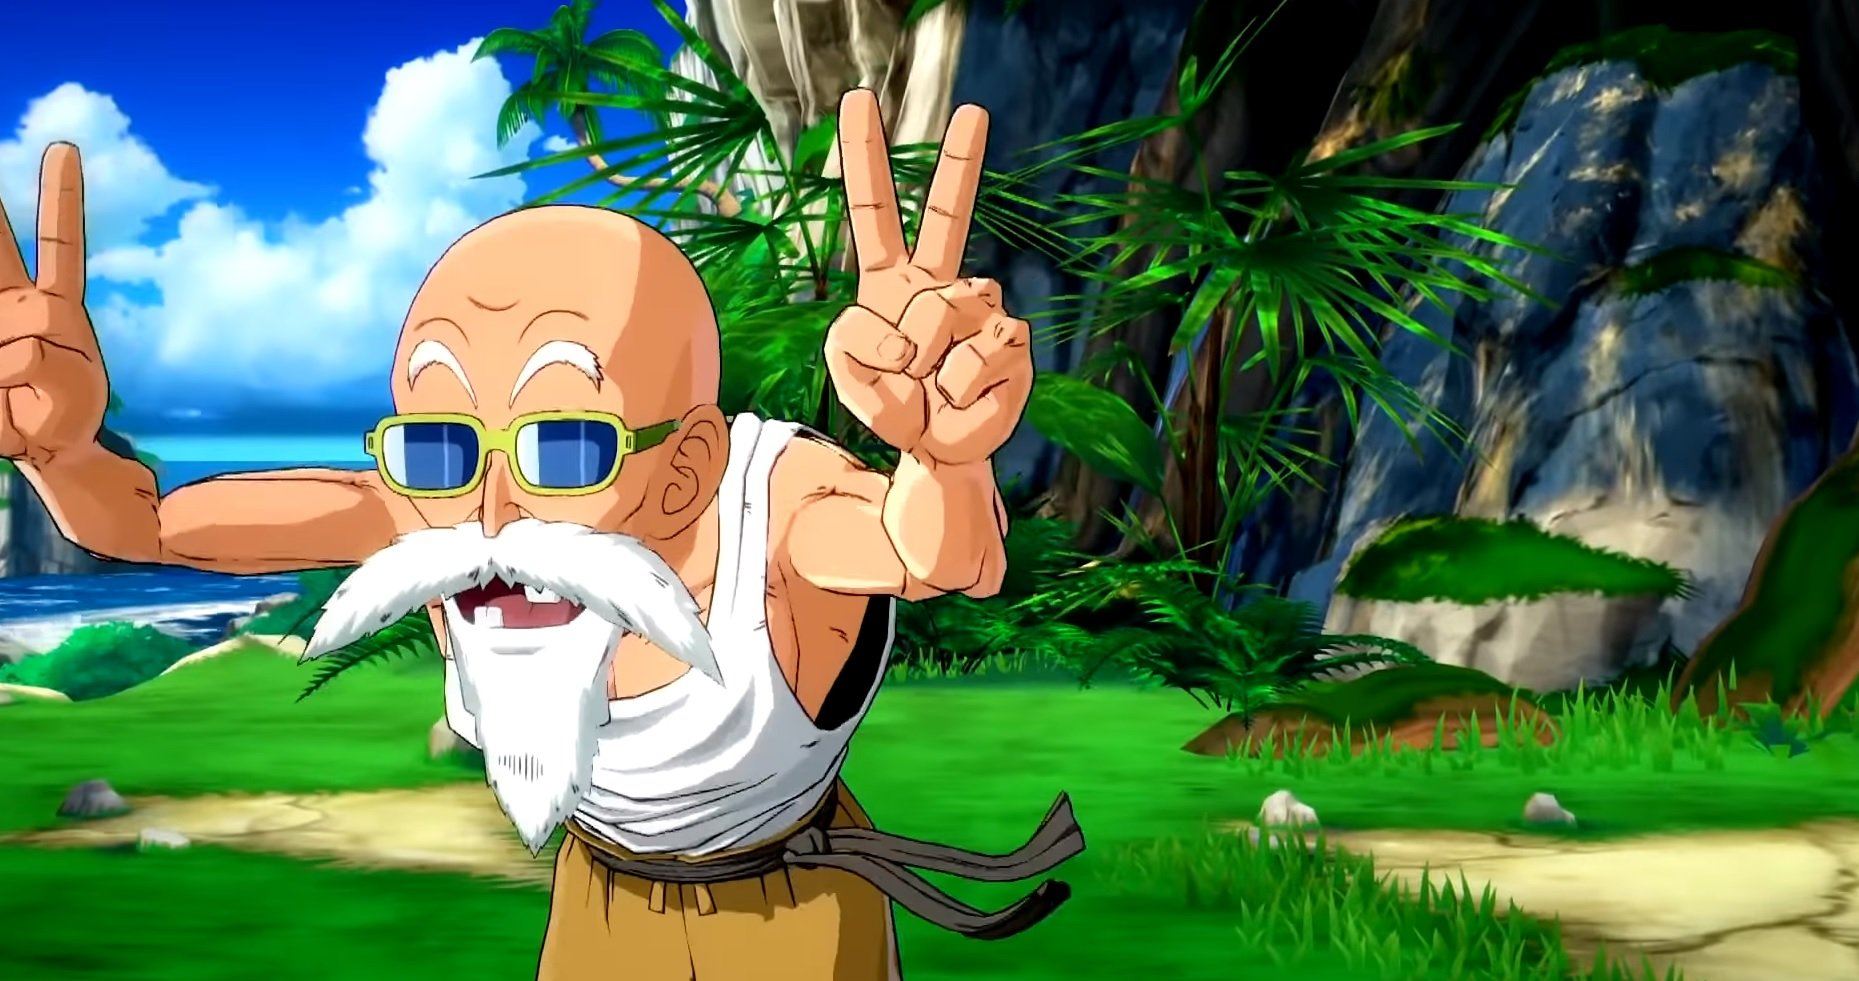 Here's a more detailed look at Dragon Ball FighterZ's Master Roshi DLC screenshot